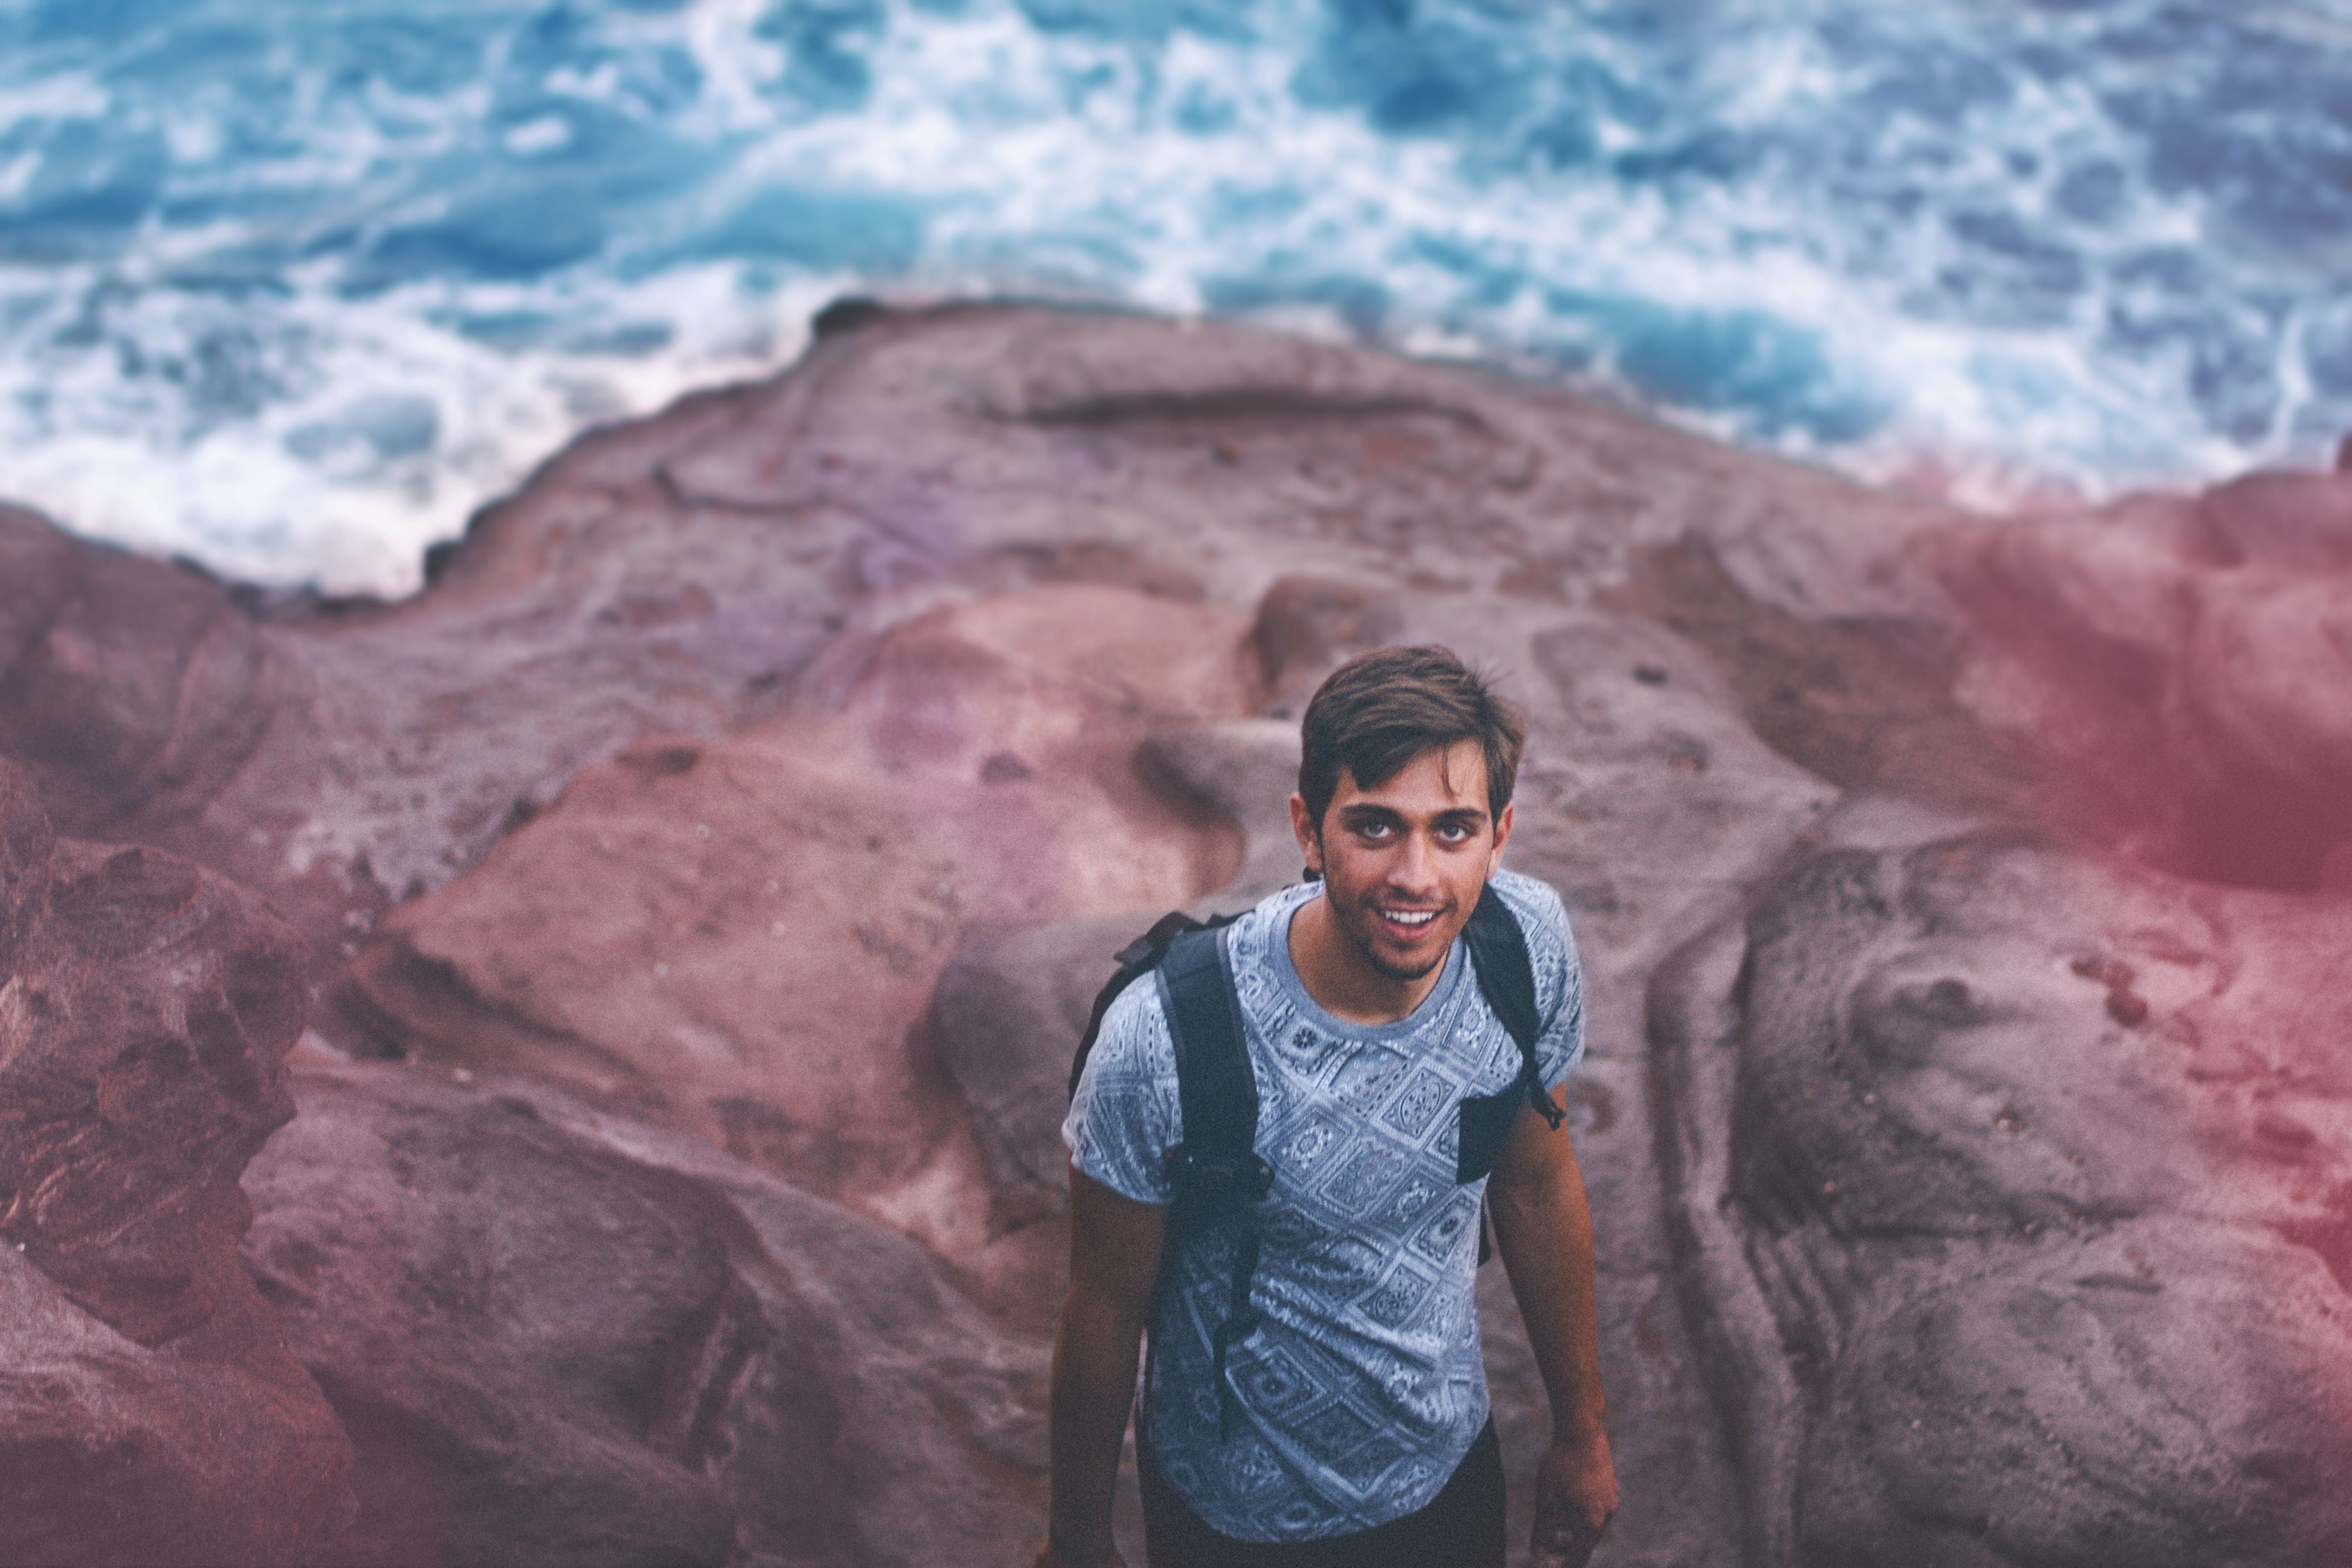 Photo Of Man Wearing Blue Shirt And Backpack Near Ocean